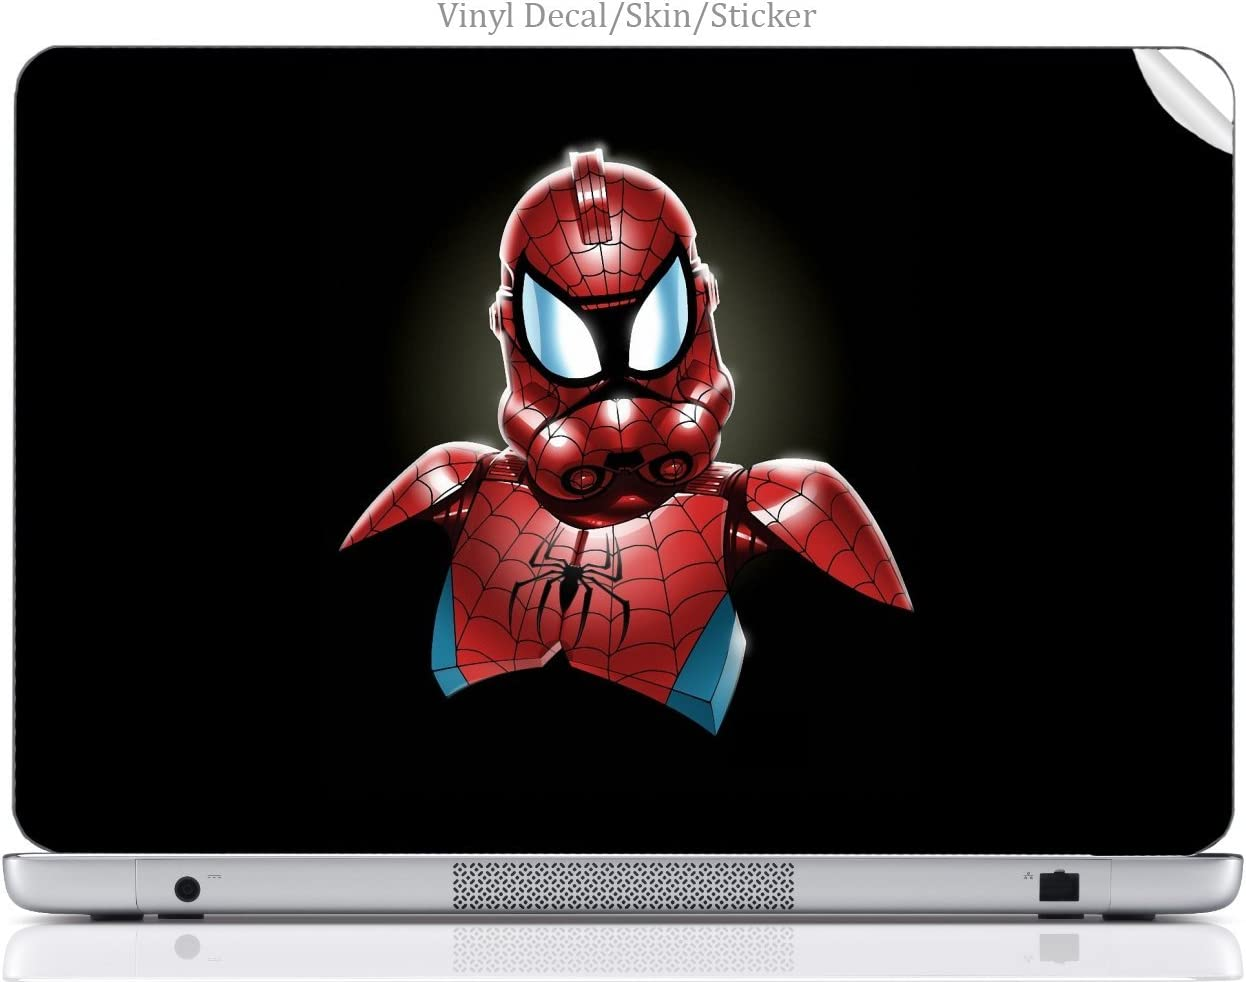 Laptop VINYL DECAL Sticker Skin Print Spiderman StormTrooper Art fits Hp Elitebook 8460p